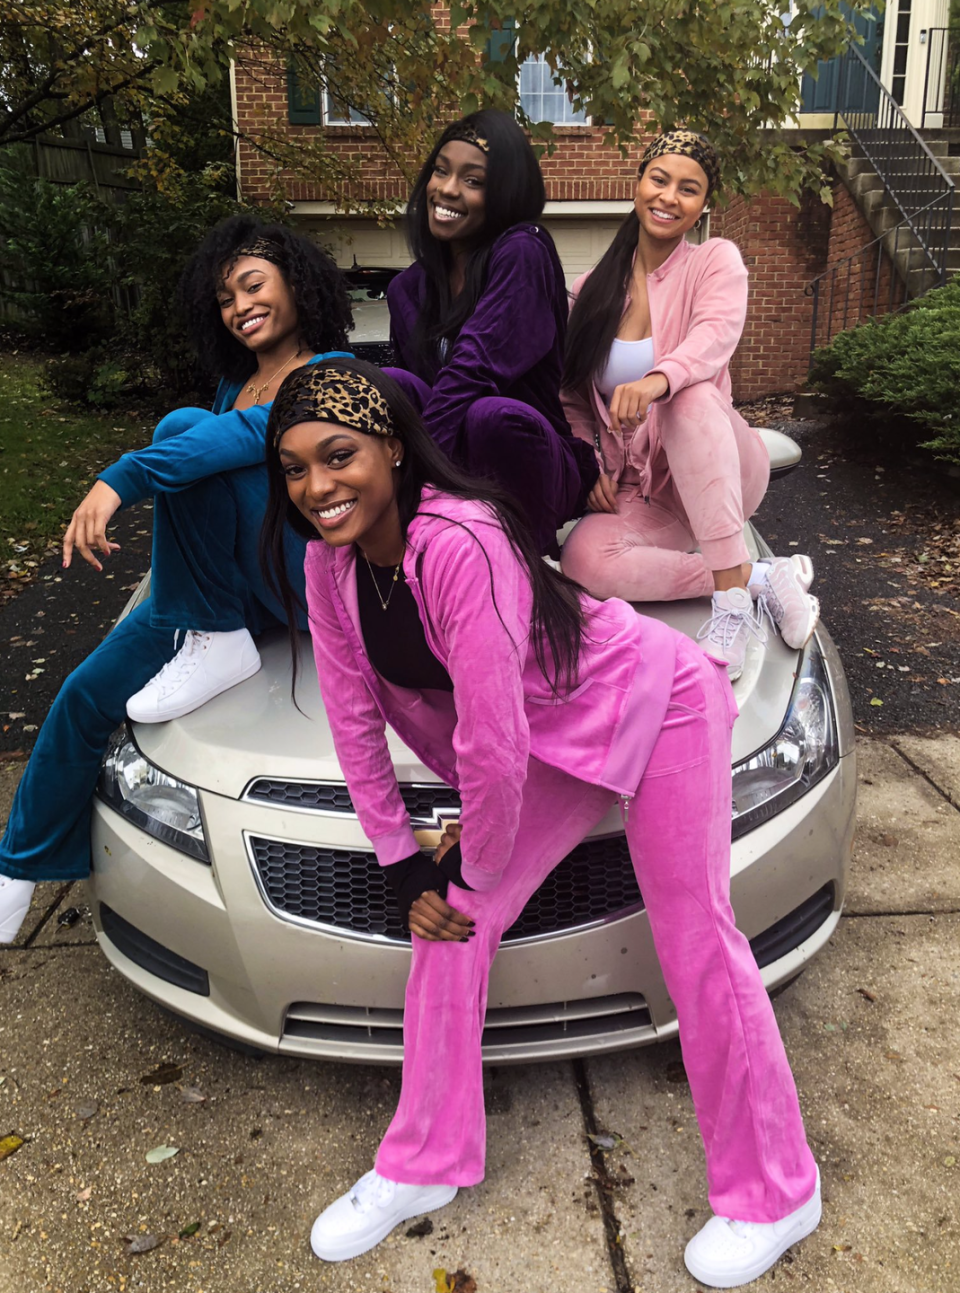 """<p>Remember this girl group? Gather up your fellow pop stars and dust off your old velour track suits for this comfortable throwback costume. </p><p><a class=""""link rapid-noclick-resp"""" href=""""https://www.amazon.com/Yeshan-Leopard-Designs-Elastic-Headband/dp/B07FY8M4LT/?tag=syn-yahoo-20&ascsubtag=%5Bartid%7C10072.g.27868790%5Bsrc%7Cyahoo-us"""" rel=""""nofollow noopener"""" target=""""_blank"""" data-ylk=""""slk:Shop Headbands"""">Shop Headbands</a></p>"""